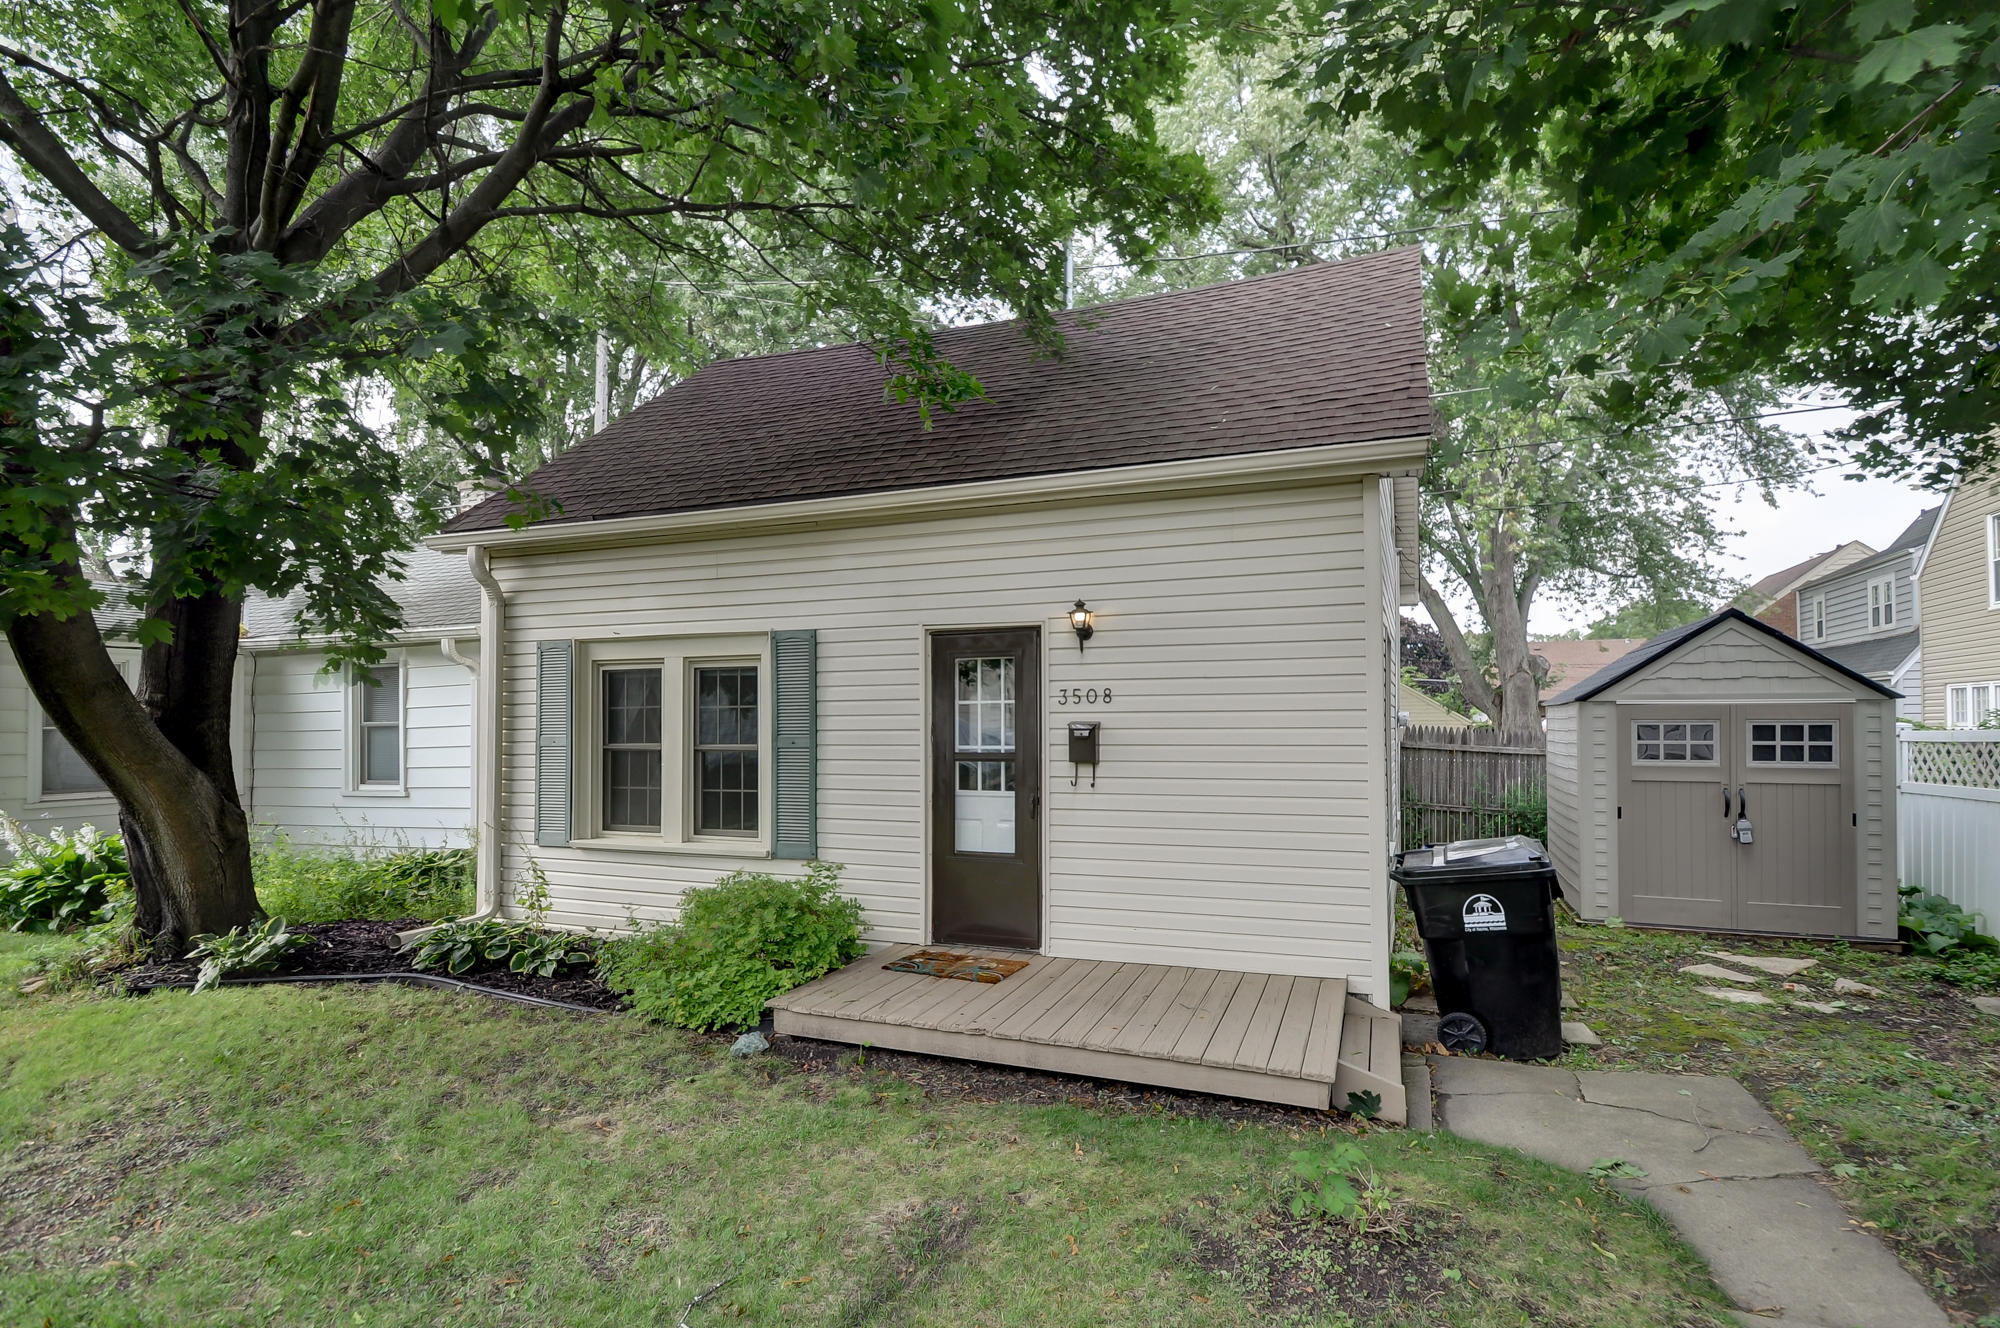 3510 Haven Ave, Racine, Wisconsin 53405, 3 Bedrooms Bedrooms, 6 Rooms Rooms,1 BathroomBathrooms,Single-Family,For Sale,Haven Ave,1667786